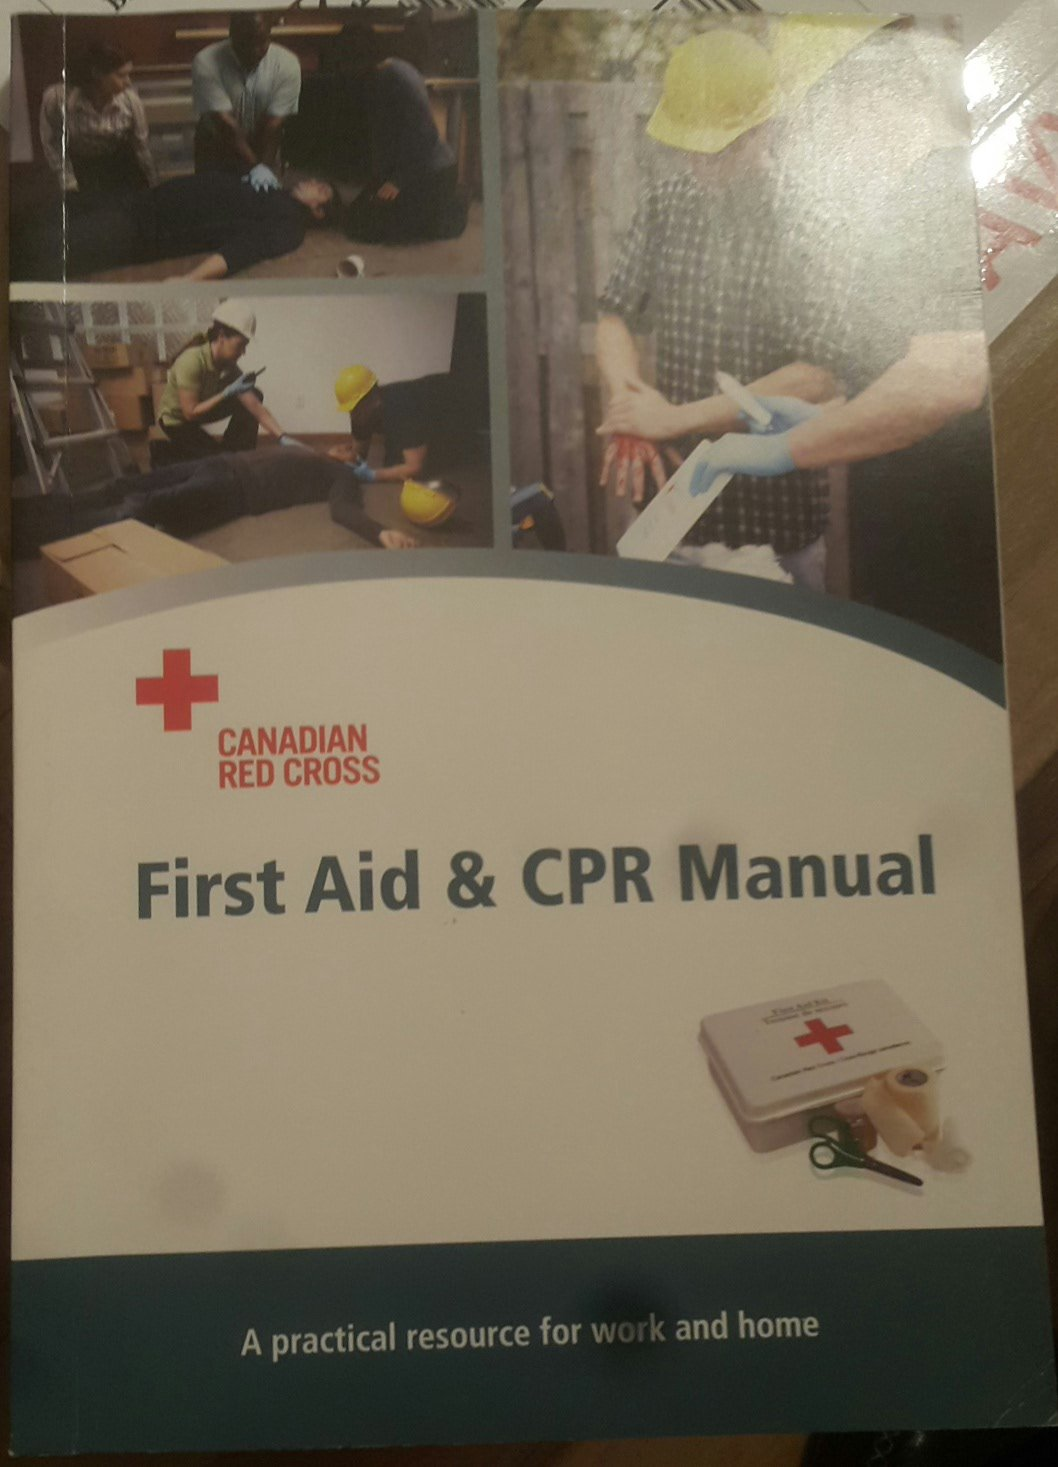 Canadian Red Cross First Aid & CPR Manual: A practical resource for work  and home: Amazon.ca: Canadian Red Cross: Books